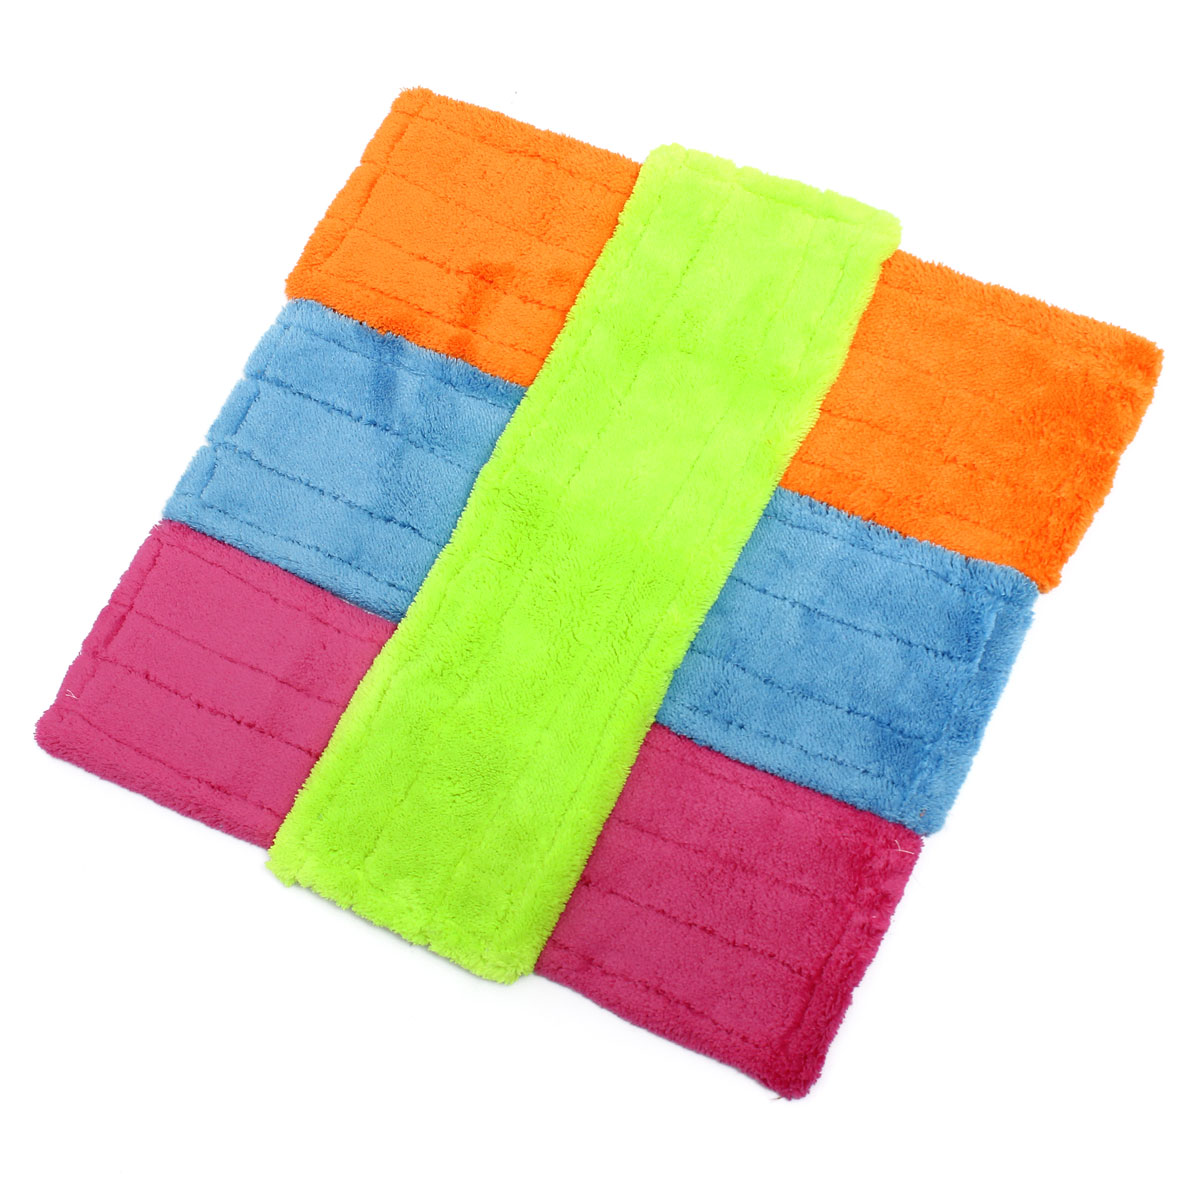 universal Cleaner Pad Dust Mop Household Microfiber Coral Mop Head Replacement Fit for Home Bathroom Kitchen Cleaning Helper DIY(China (Mainland))